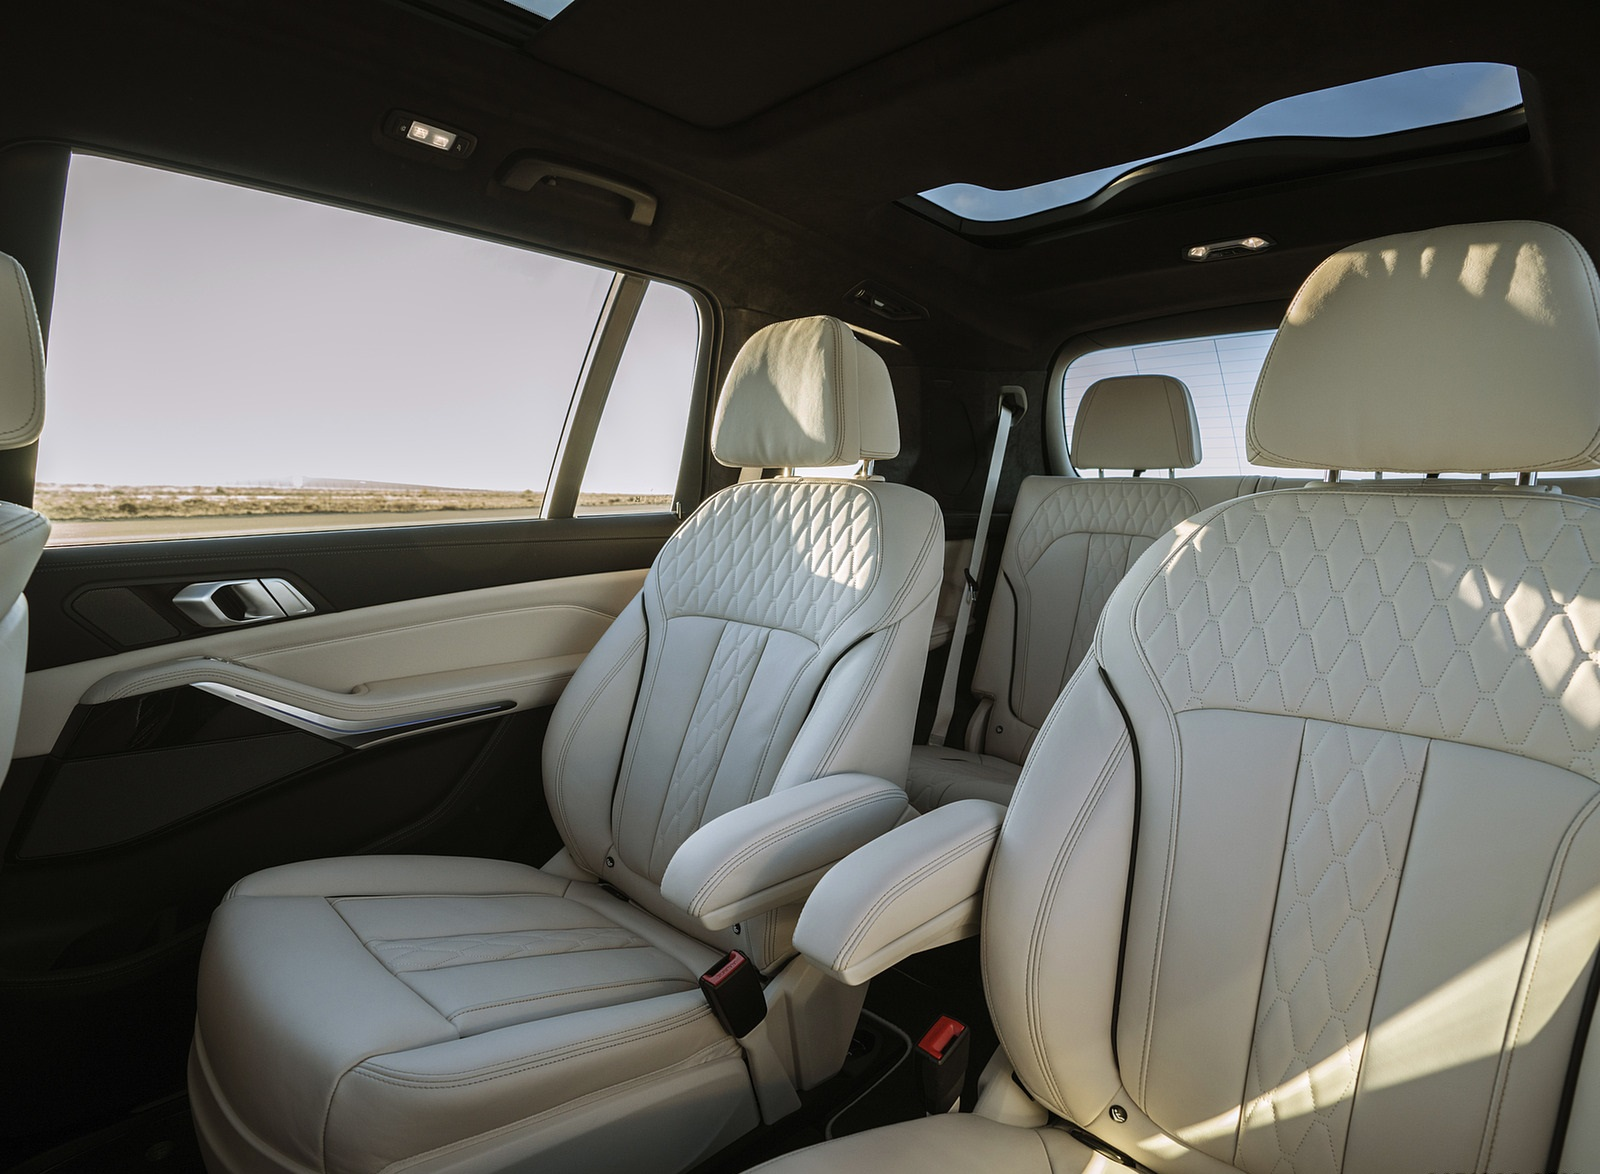 2021 Alpina Xb7 Based On Bmw X7 Interior Rear Seats Wallpapers 31 Newcarcars